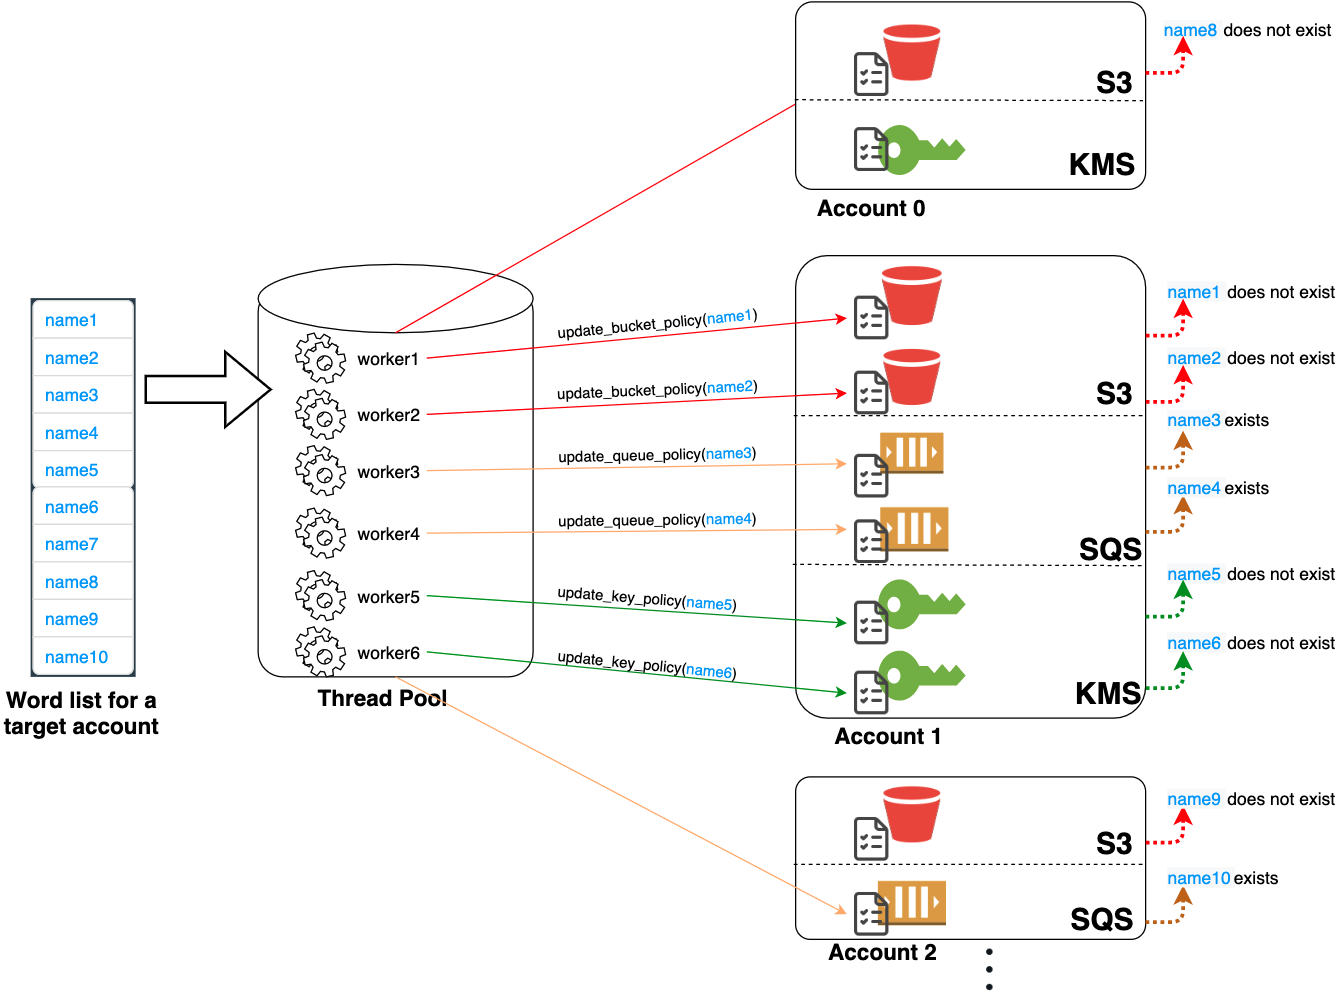 The architecture of IAMFinder accesses multiple resources concurrently with multithreading and alternates between accounts and services in a round robin manner.